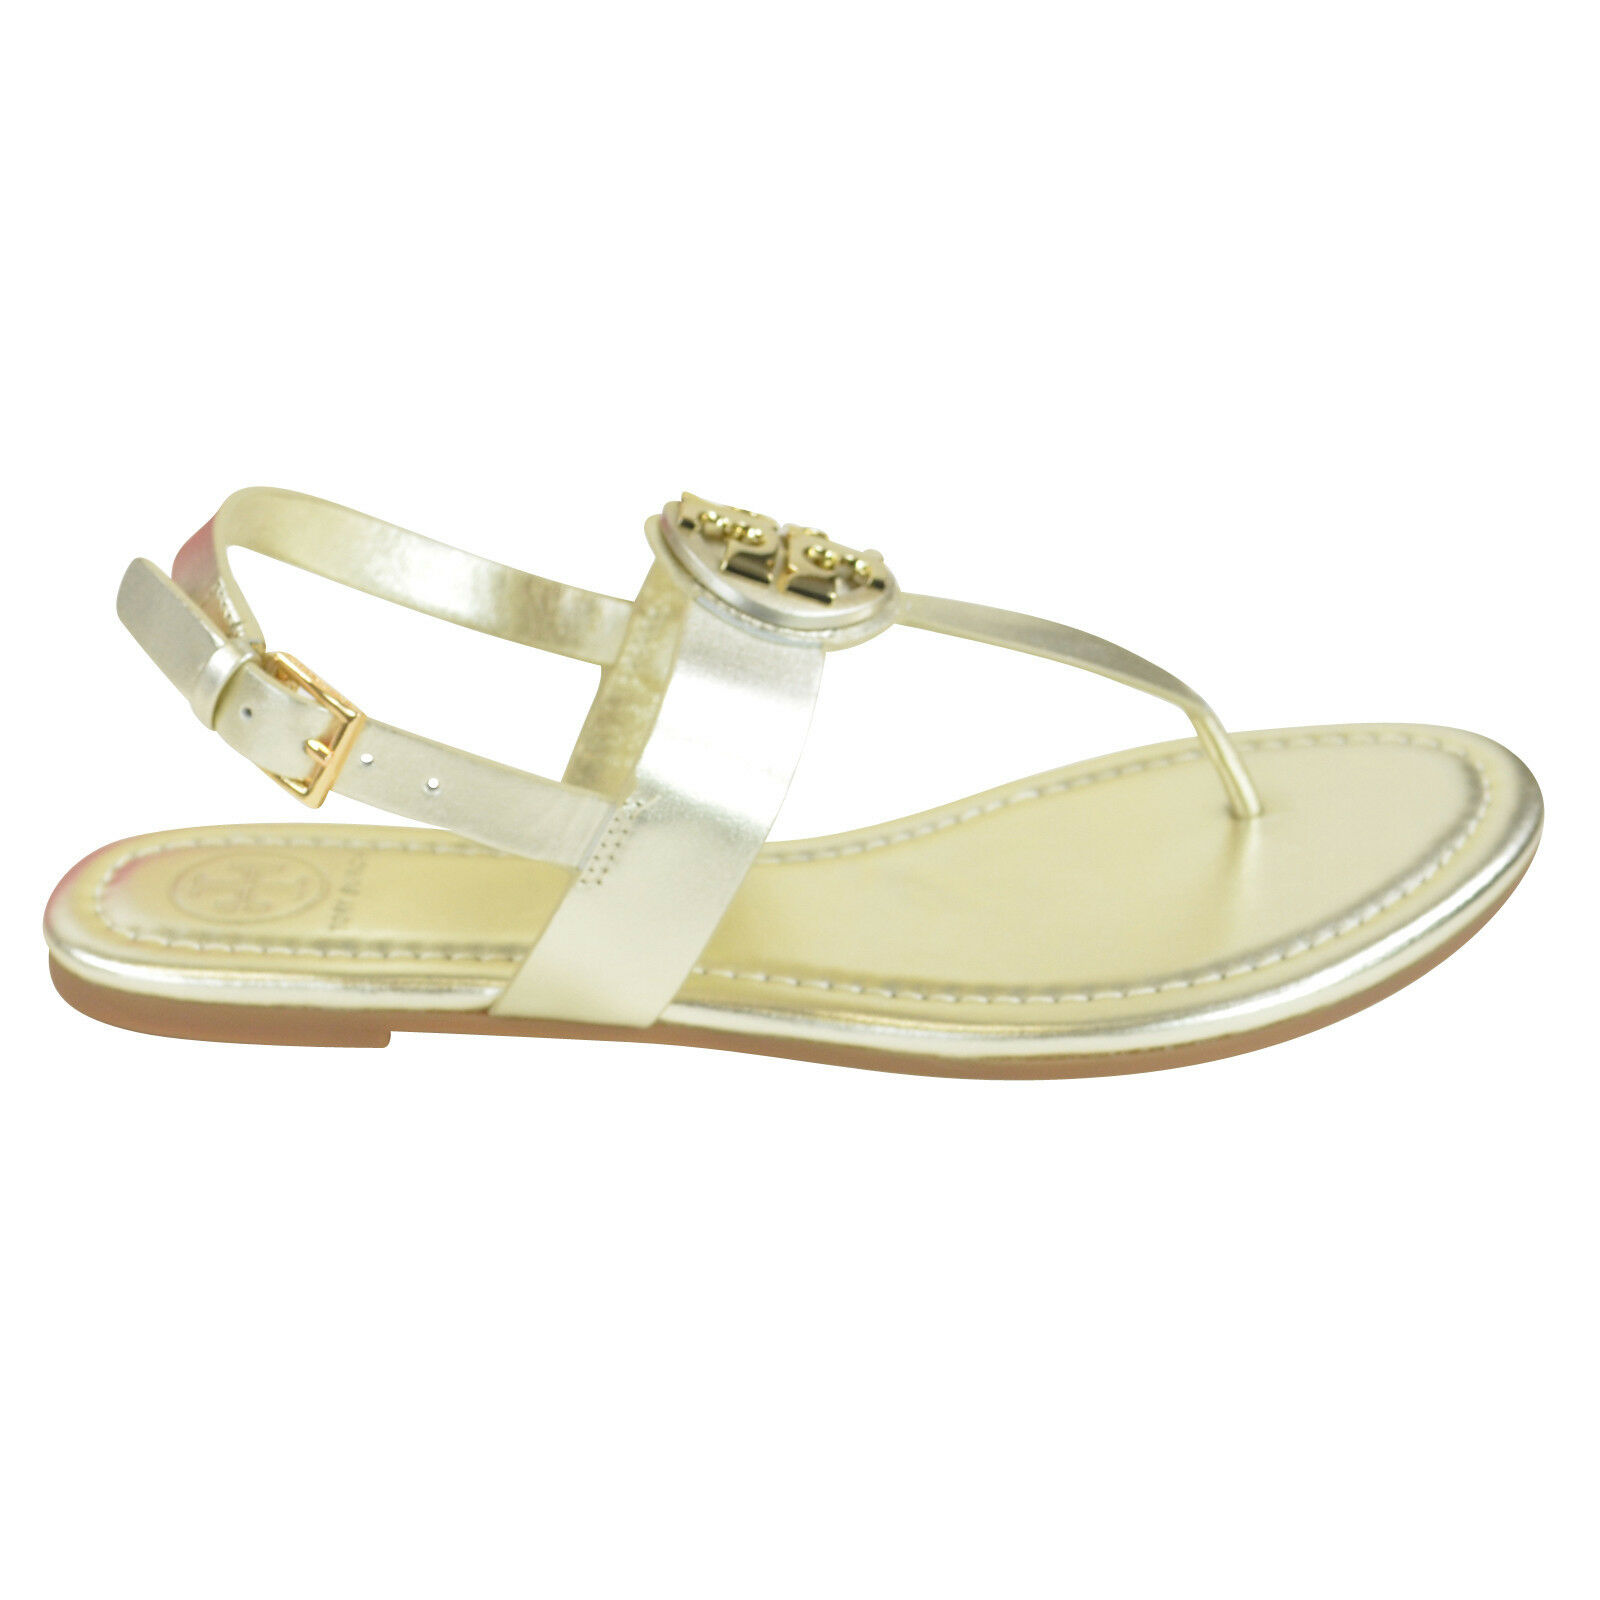 9504e950d Tory Burch Bryce Flate Thong Sandal  Vegan Leather in Spark Gold 9 ...